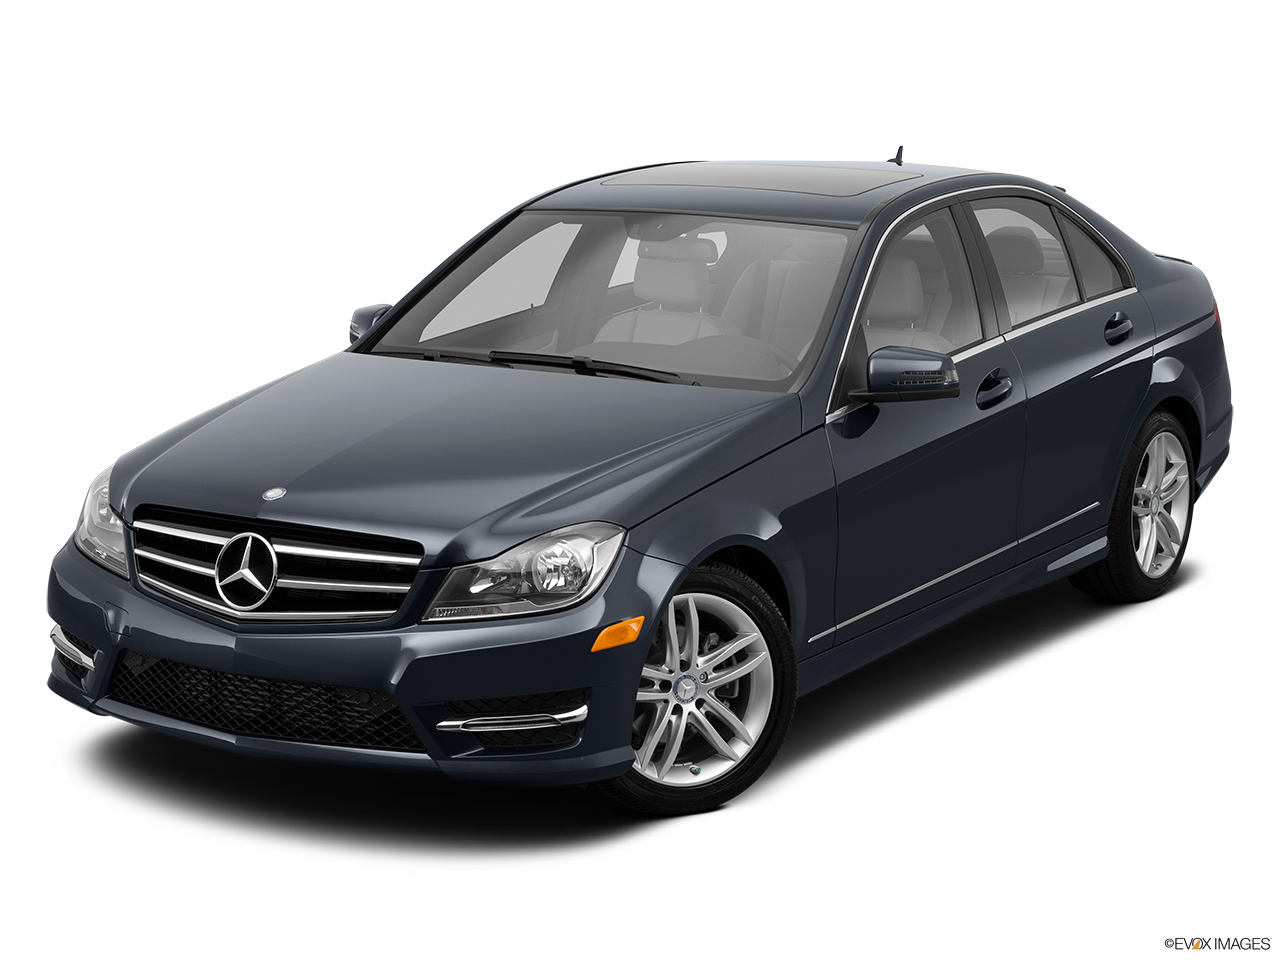 2014 mercedes benz c class sedan c250 luxury rwd for 2014 mercedes benz c class c300 sport